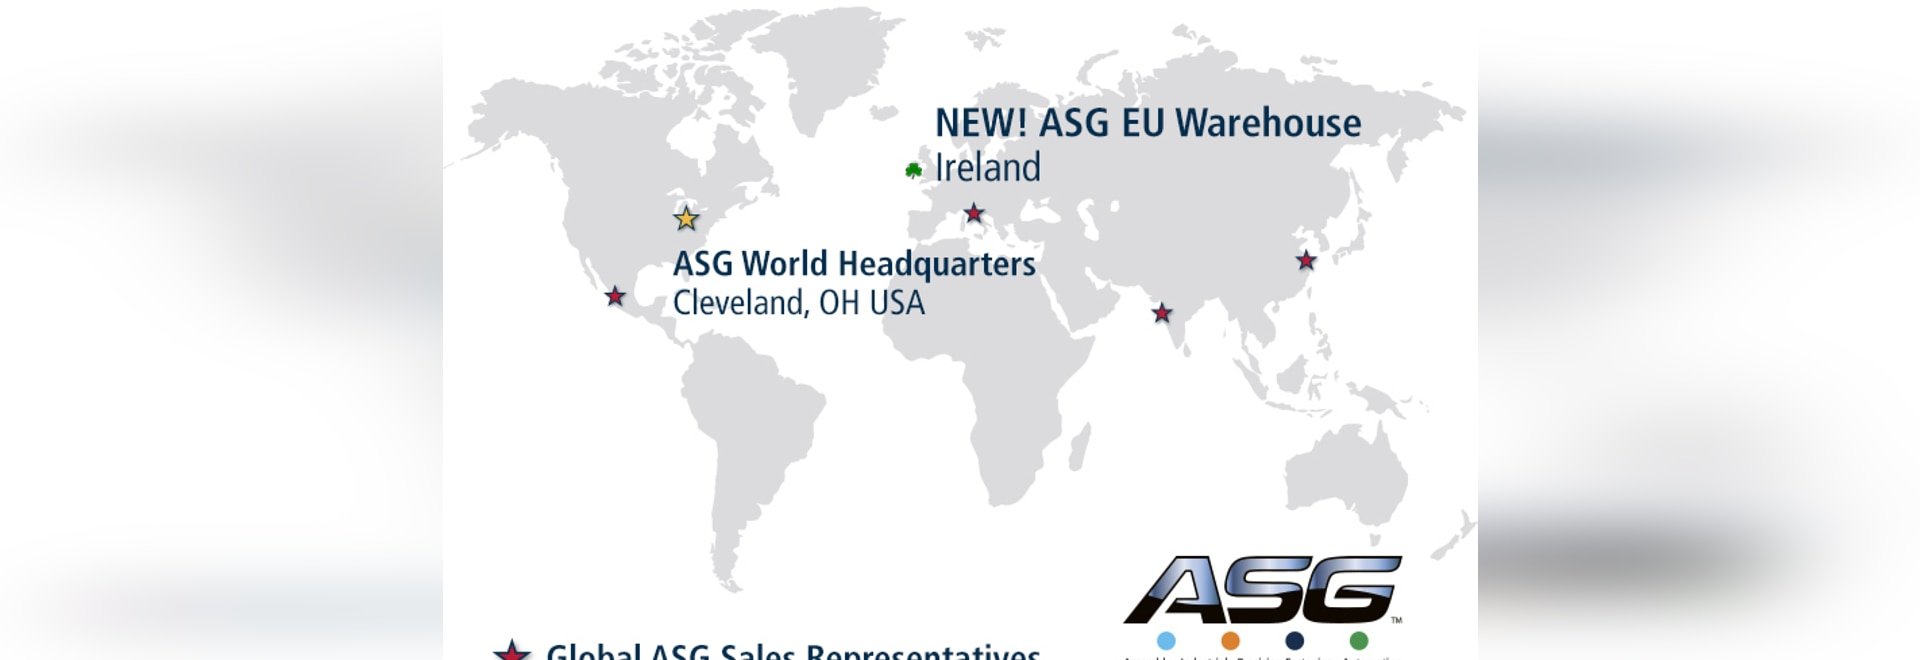 ASG assembly tool warehouse location in Europe